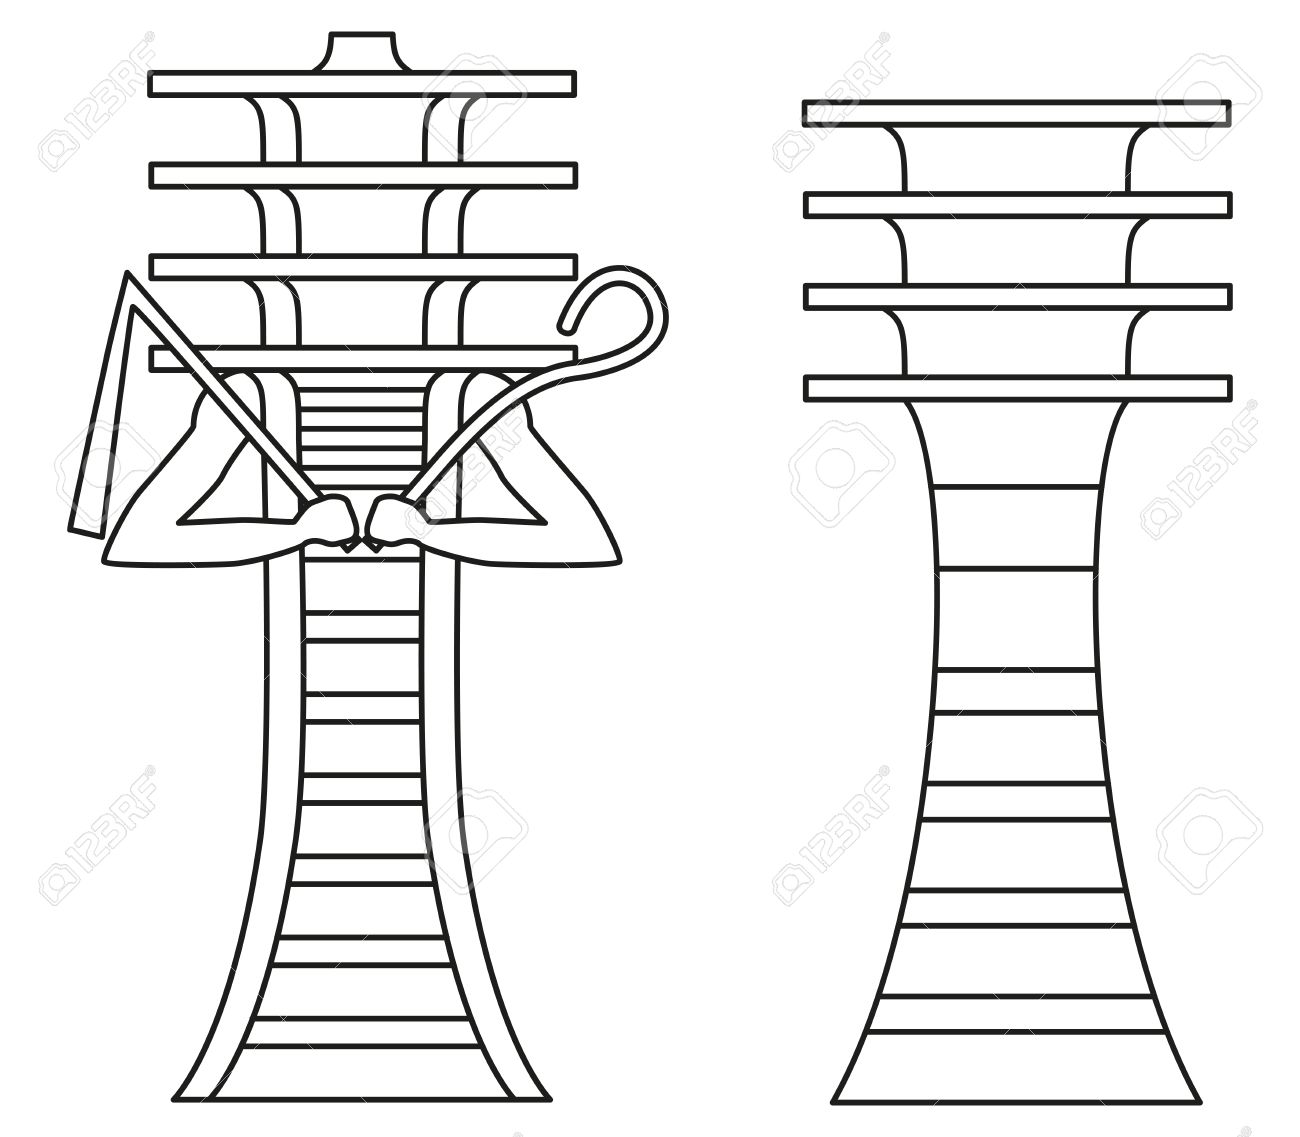 Simple Djed Pillar And Djed Pillar With Crook And Flail Hieroglyph